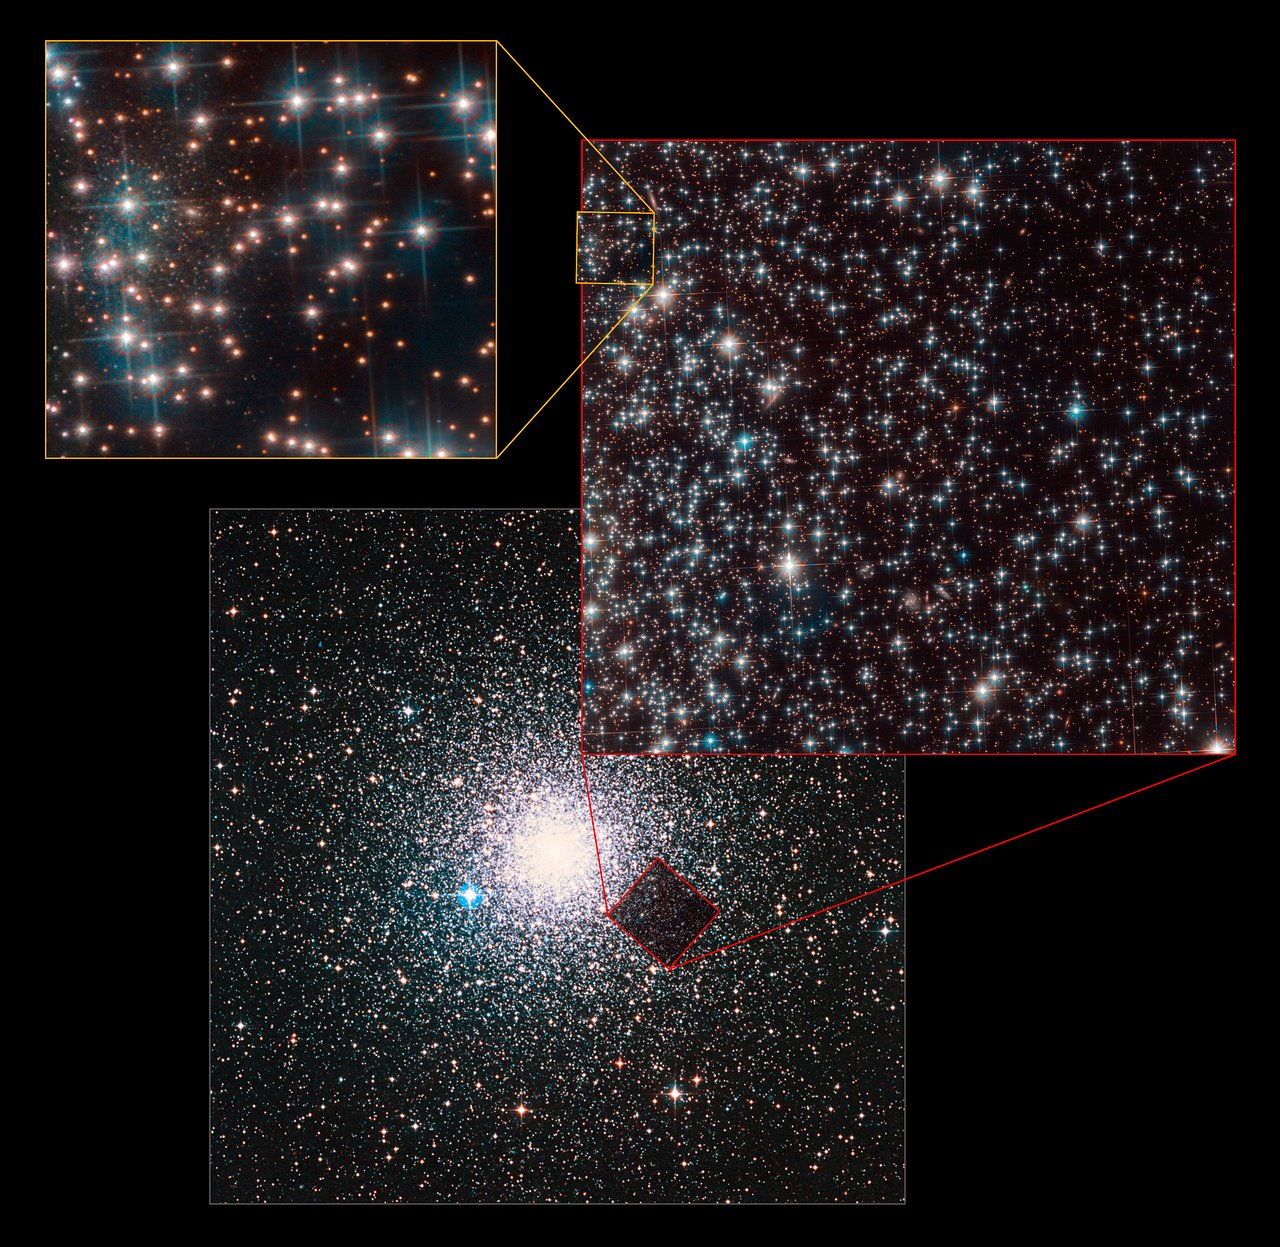 Hubble Captures Stunning New Dwarf Galaxy Close to the Milky Way